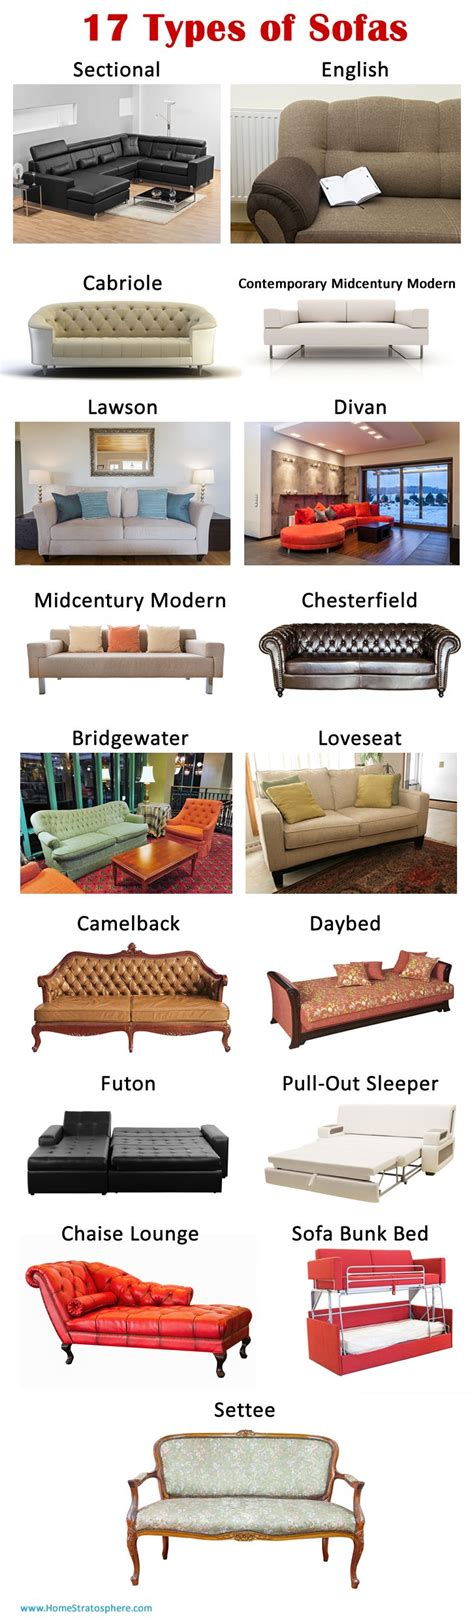 different types of sofas 20 types of sofas couches explained with pictures